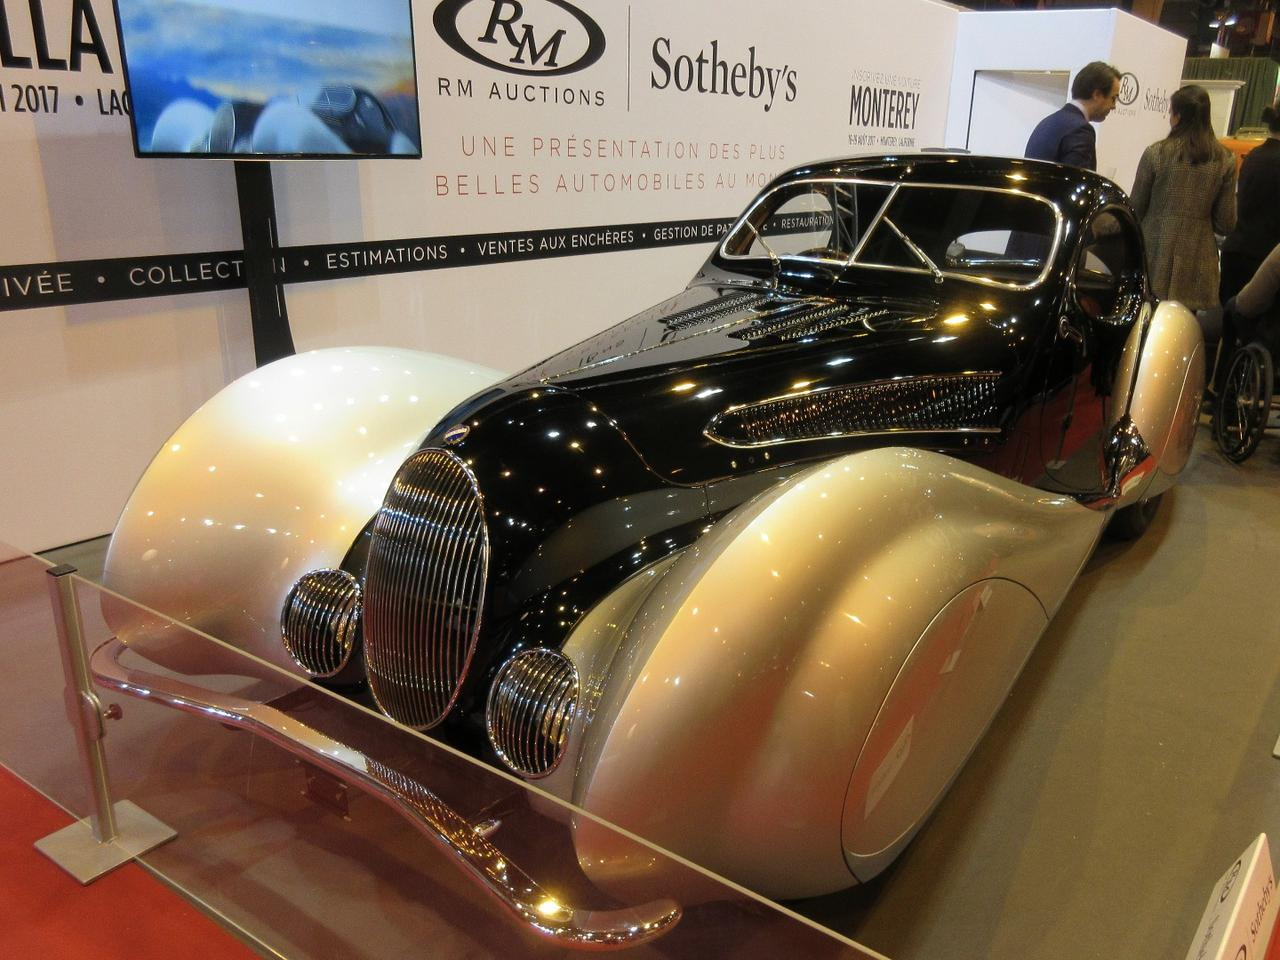 "One of the stars of the exhibits in Paris was the RM-Sothebys stand which carried two cars to be auctioned later in the year. This 1937 Talbot-Lago T150C SS ""Goutte d'Eau"" Coupé by Figoni et Falaschi will go to auction at Villa Erba."